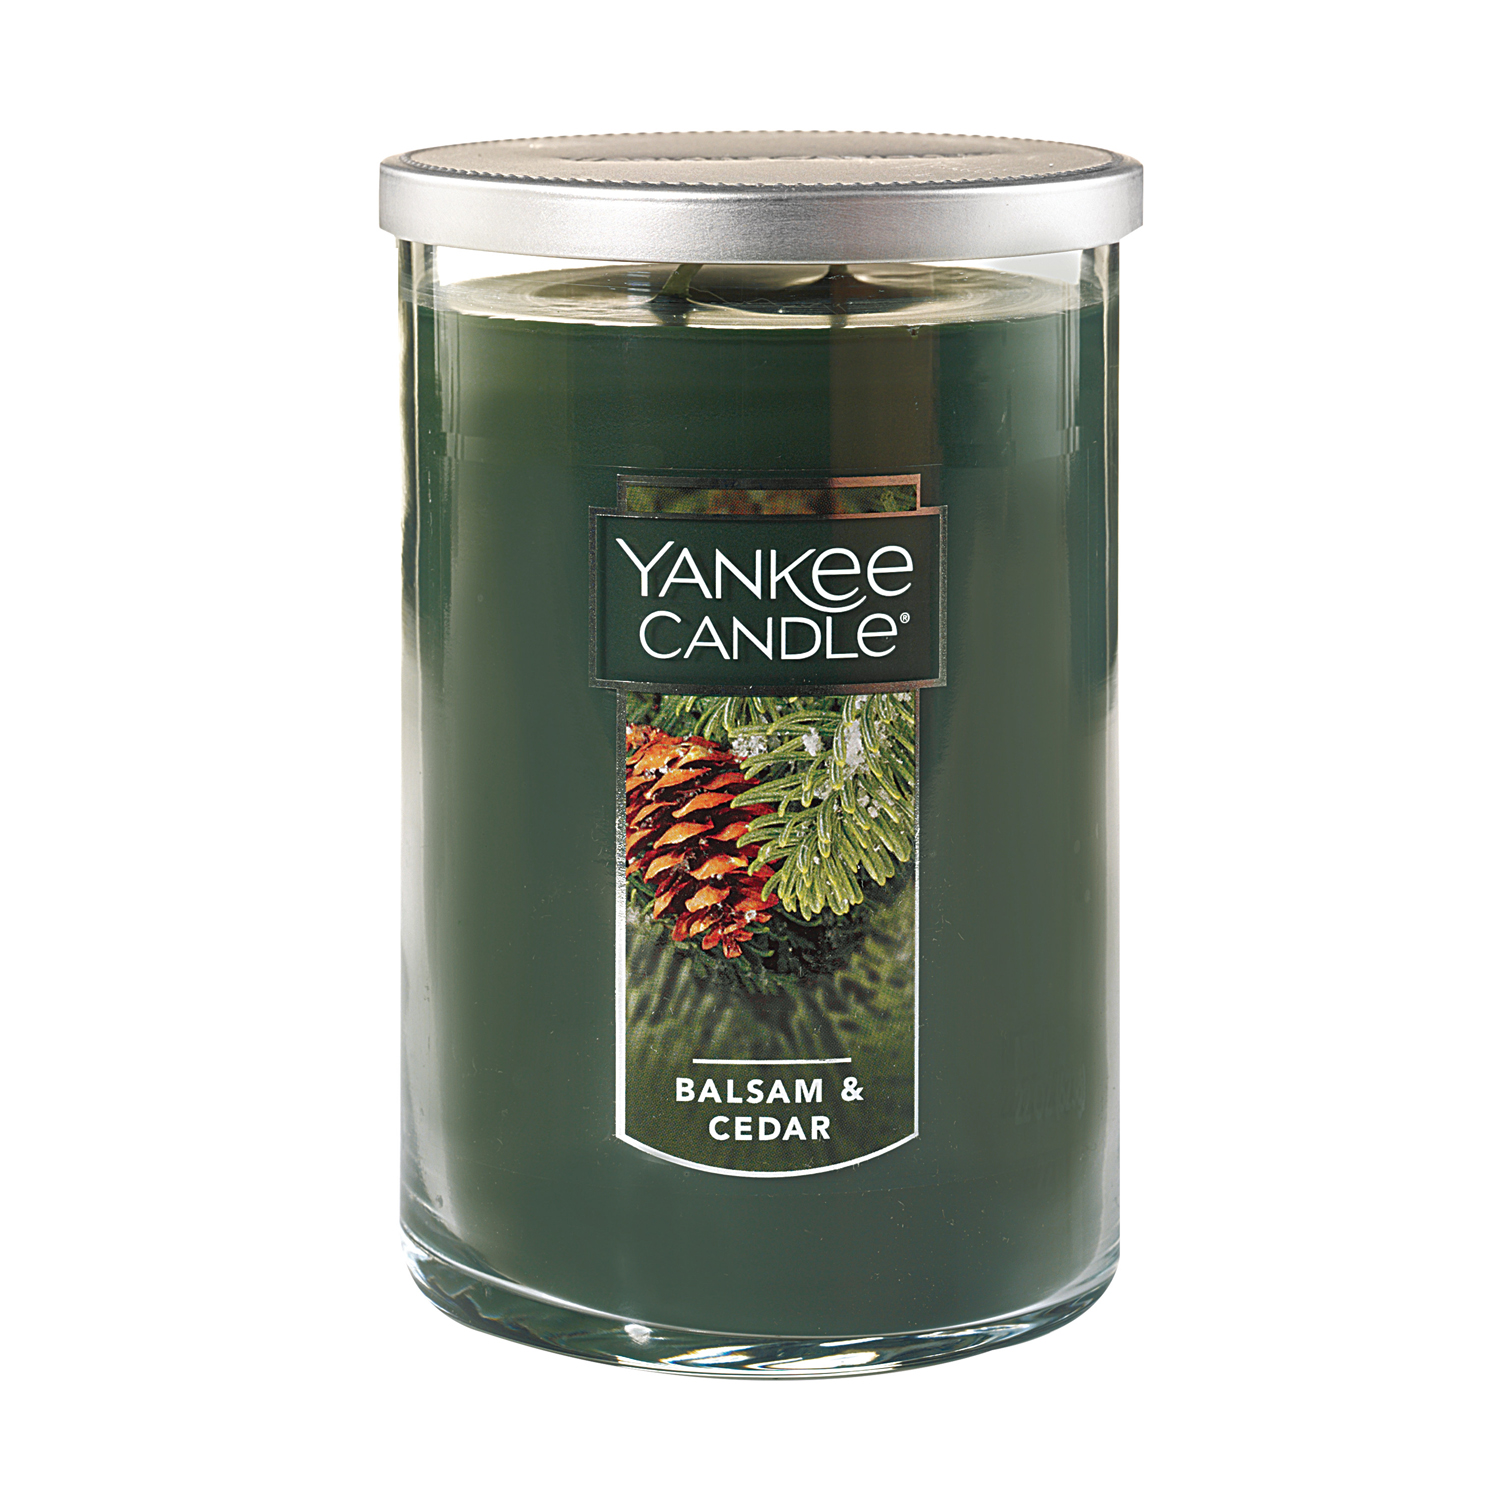 Yankee Candle Large 2-Wick Tumbler Scented Candle, Balsam & Cedar